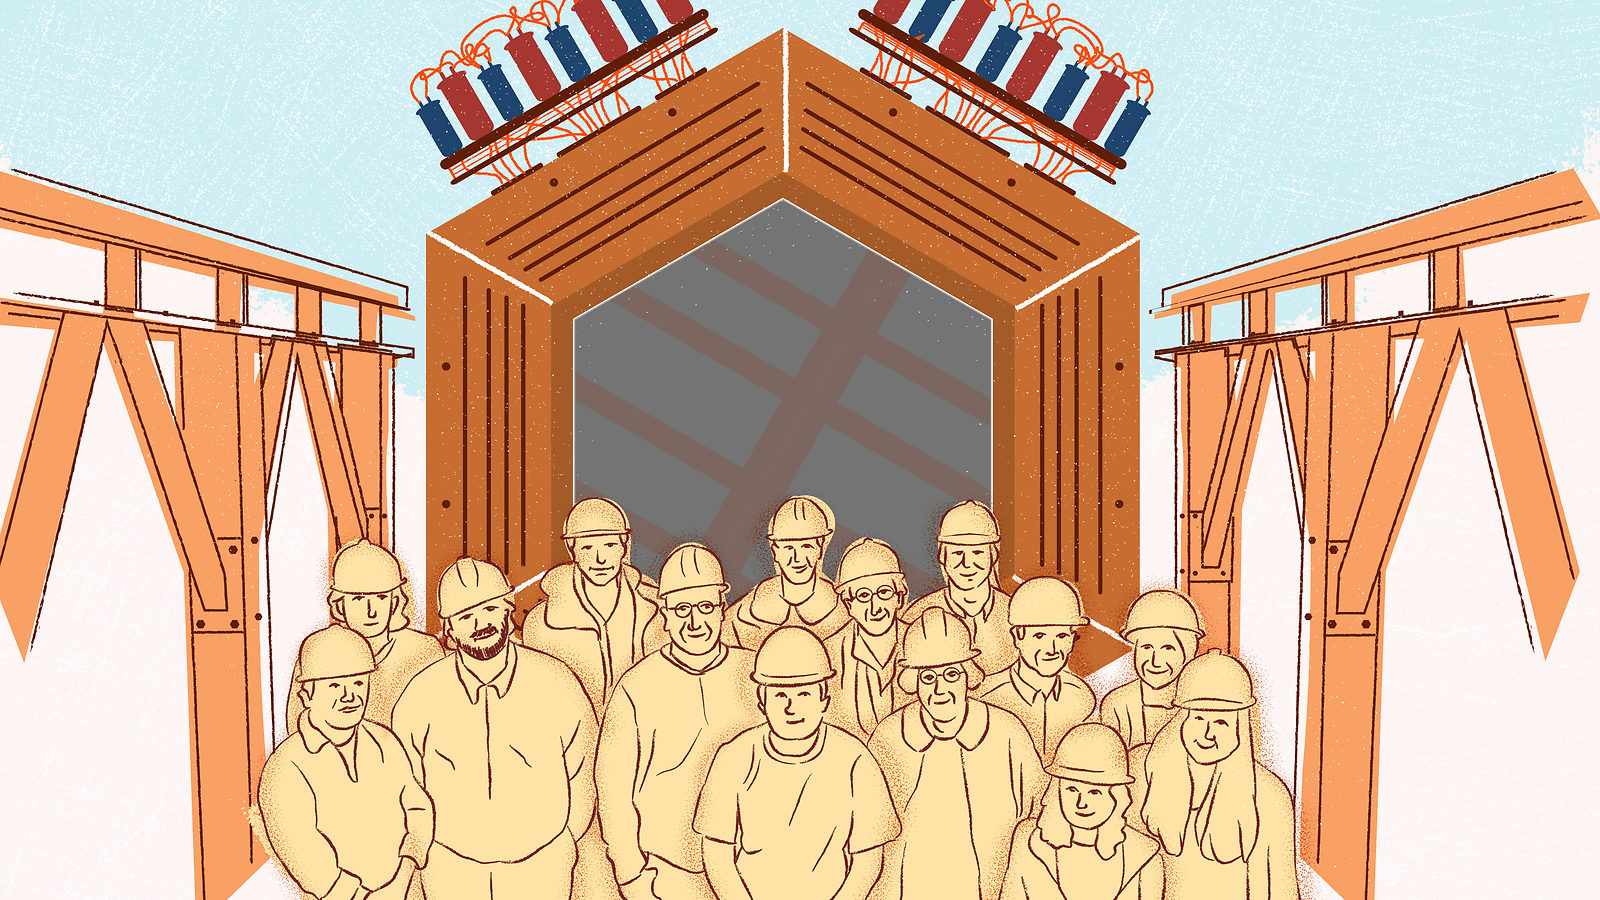 An illustration of a group of people in front of the MINERvA detector